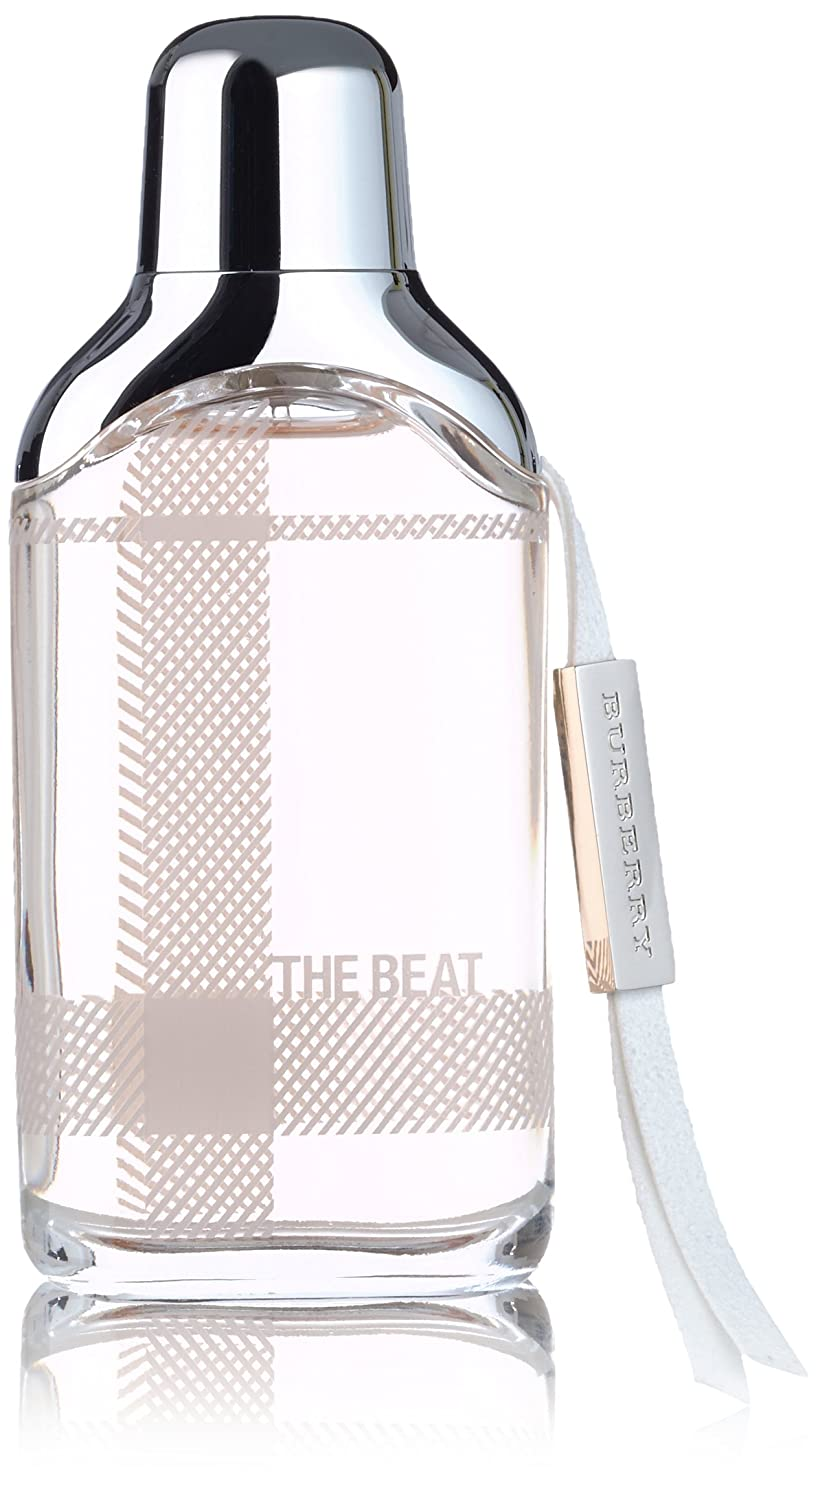 De For The Beat Burberry 5 Women2 Parfum FlOz Eau 3c5LA4jqR